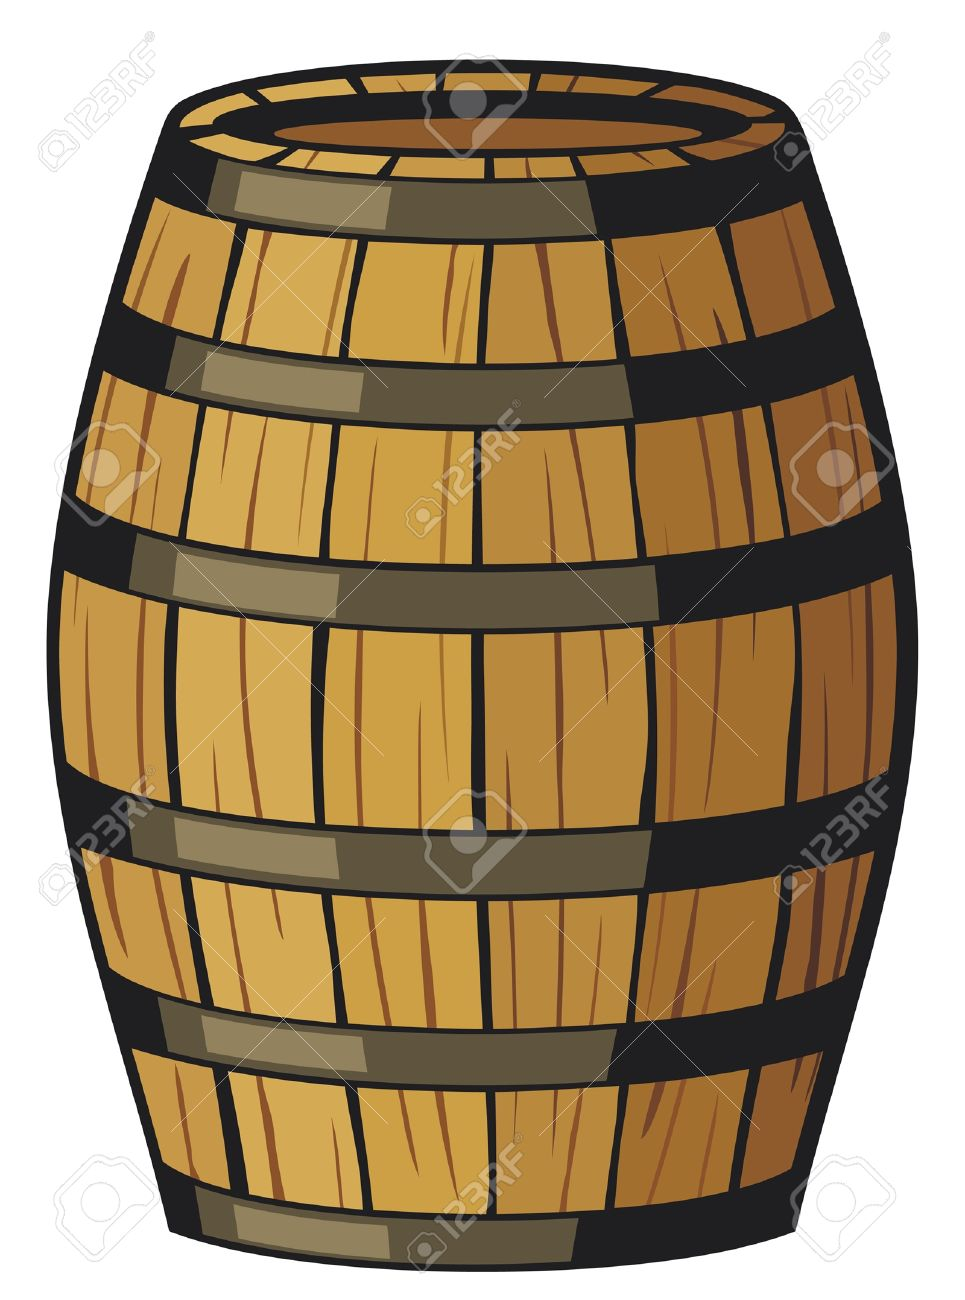 1,659 Whiskey Barrel Stock Vector Illustration And Royalty Free.